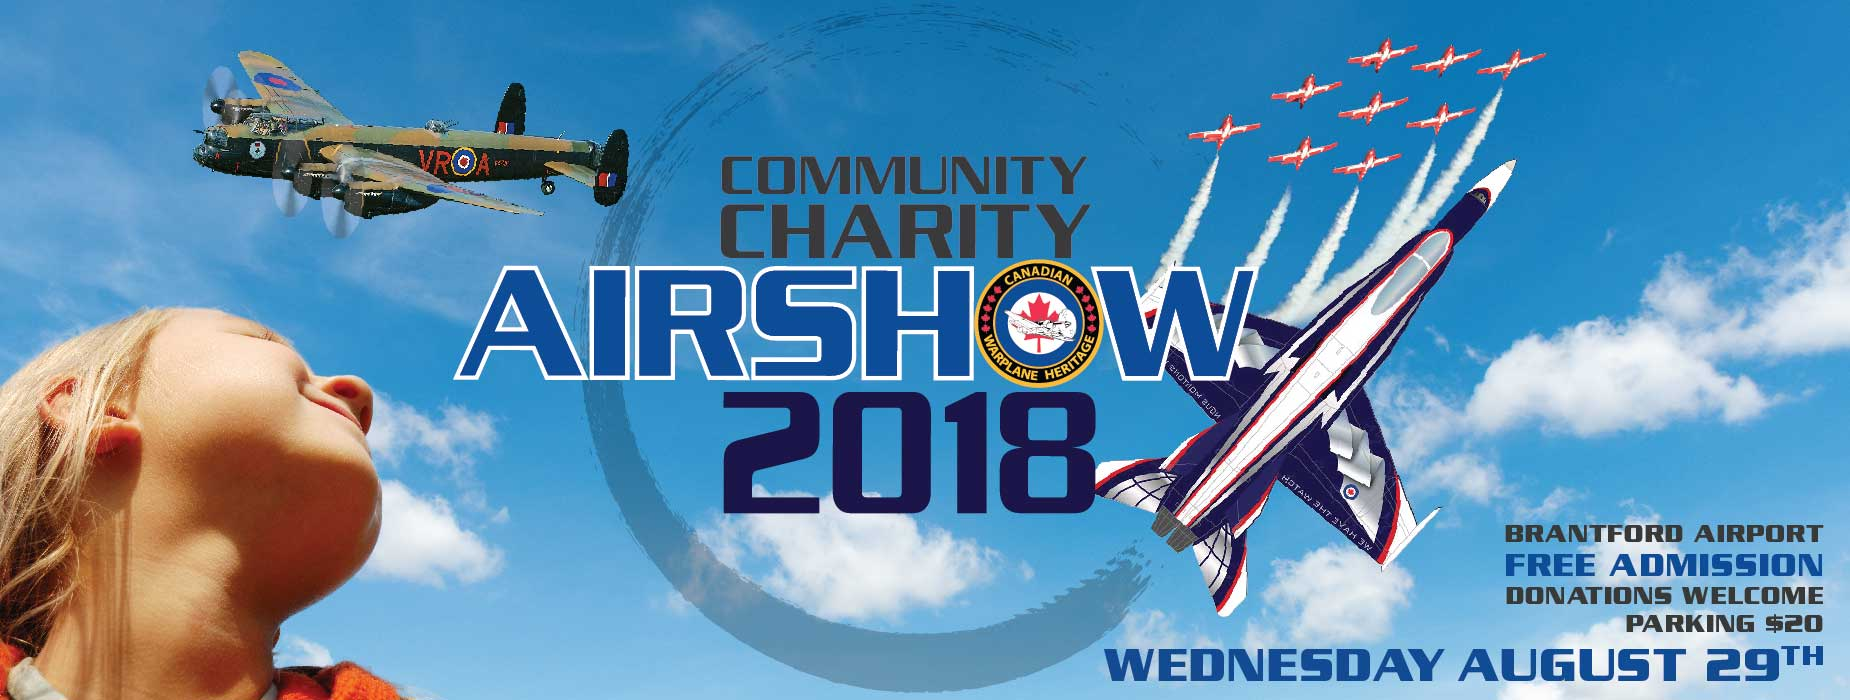 Banner Image for the Community Charity Airshow event